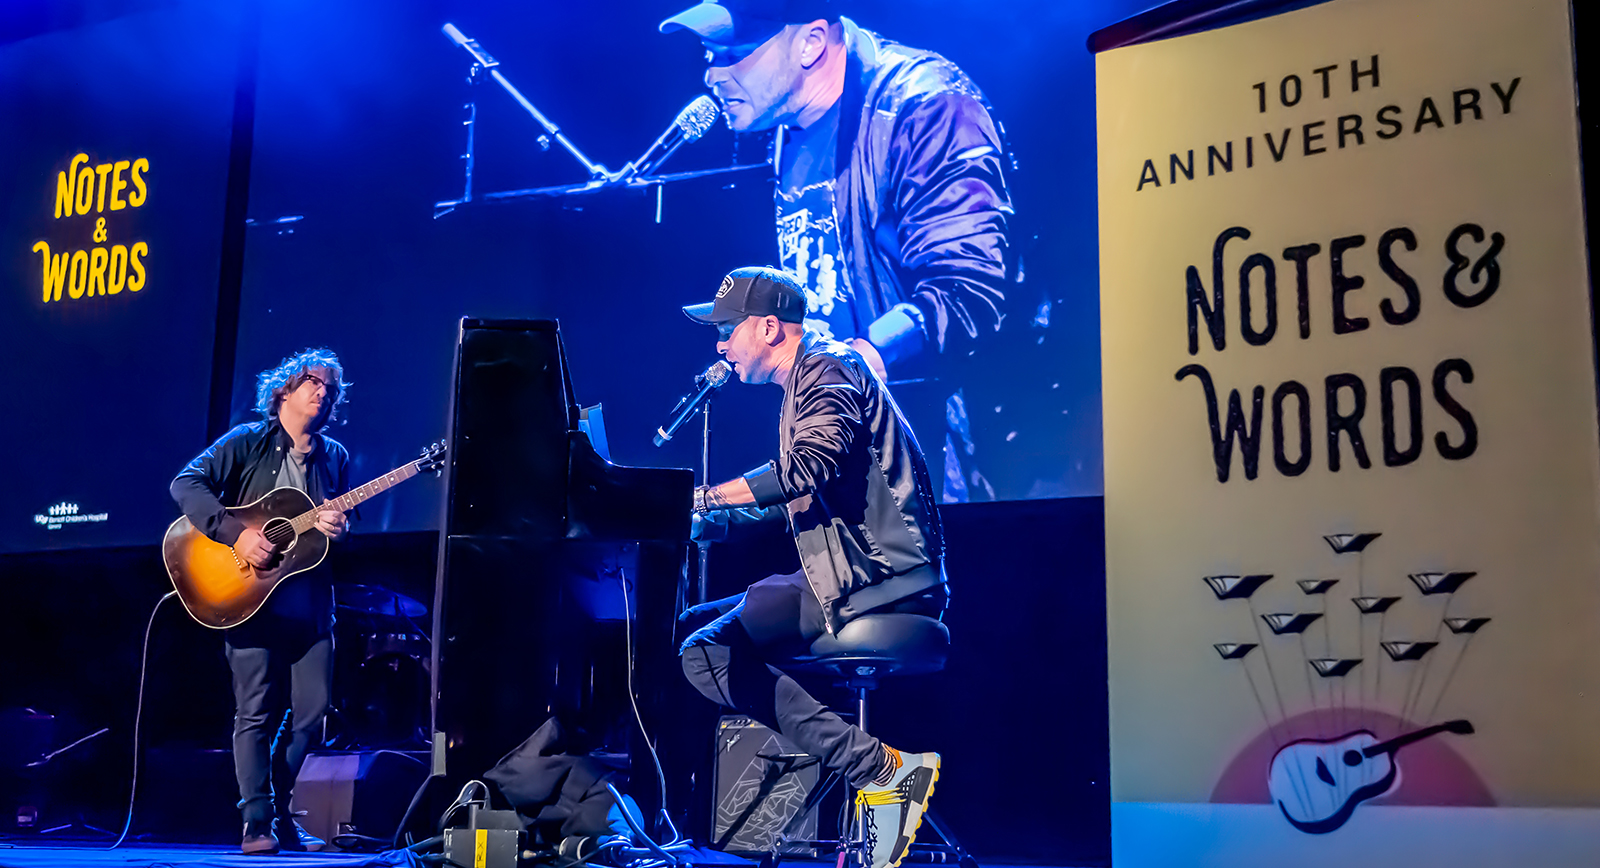 Notes & Words 2019: Benefit For UCSF Benioff Children's